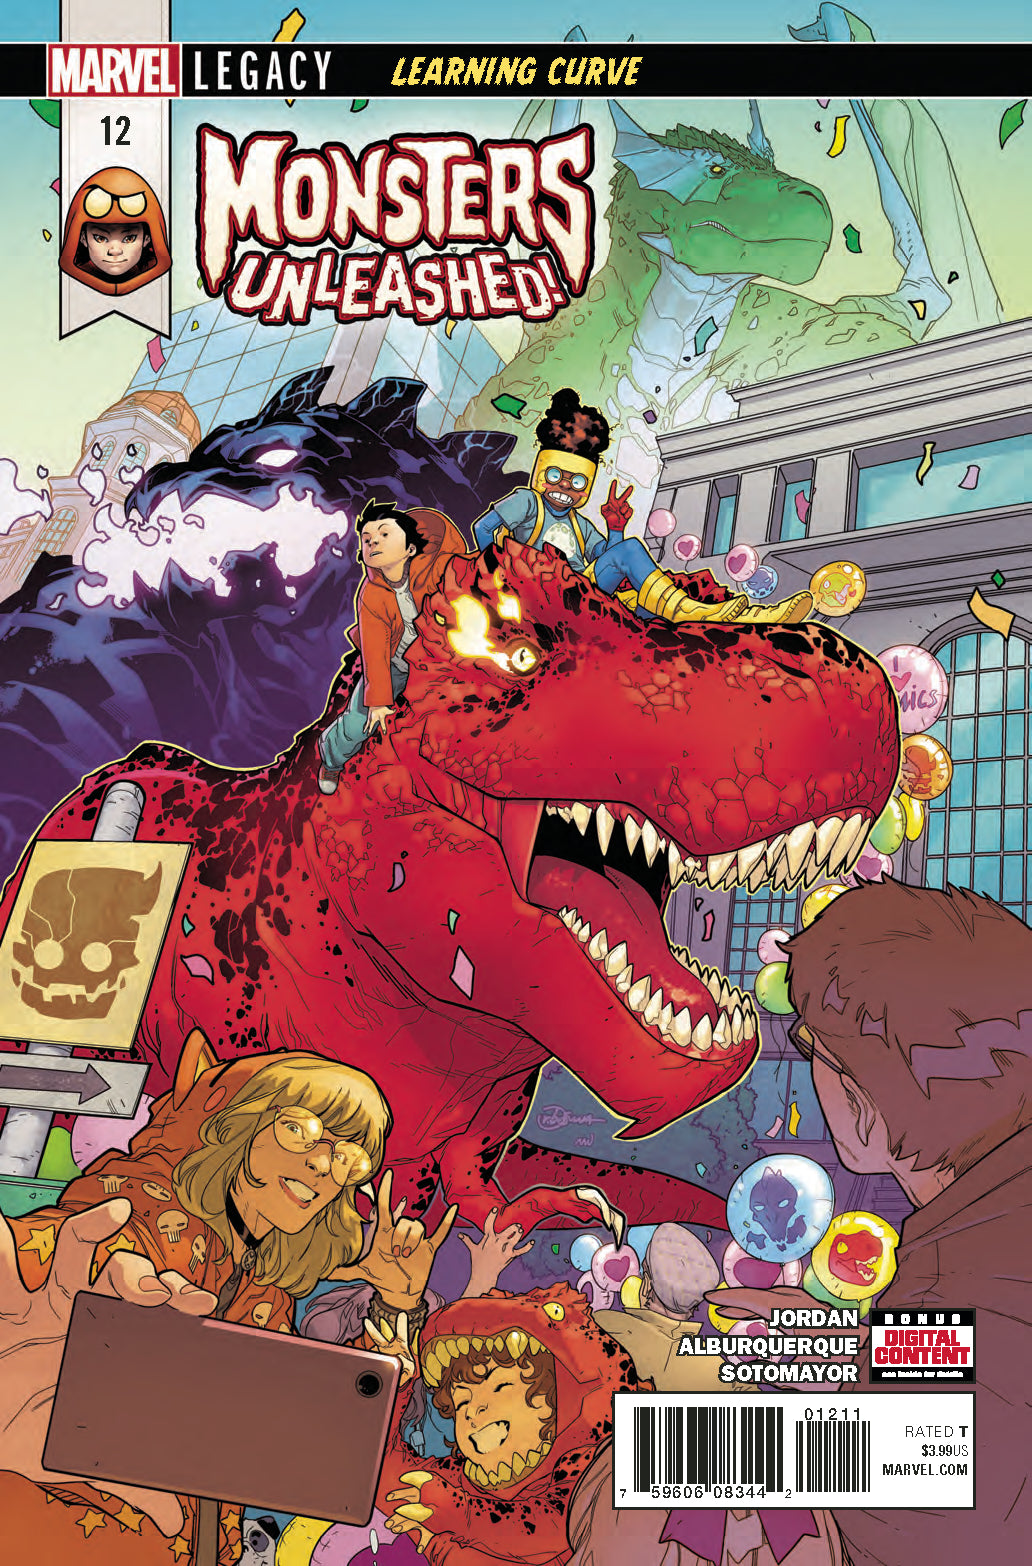 MONSTERS UNLEASHED #12 LEG